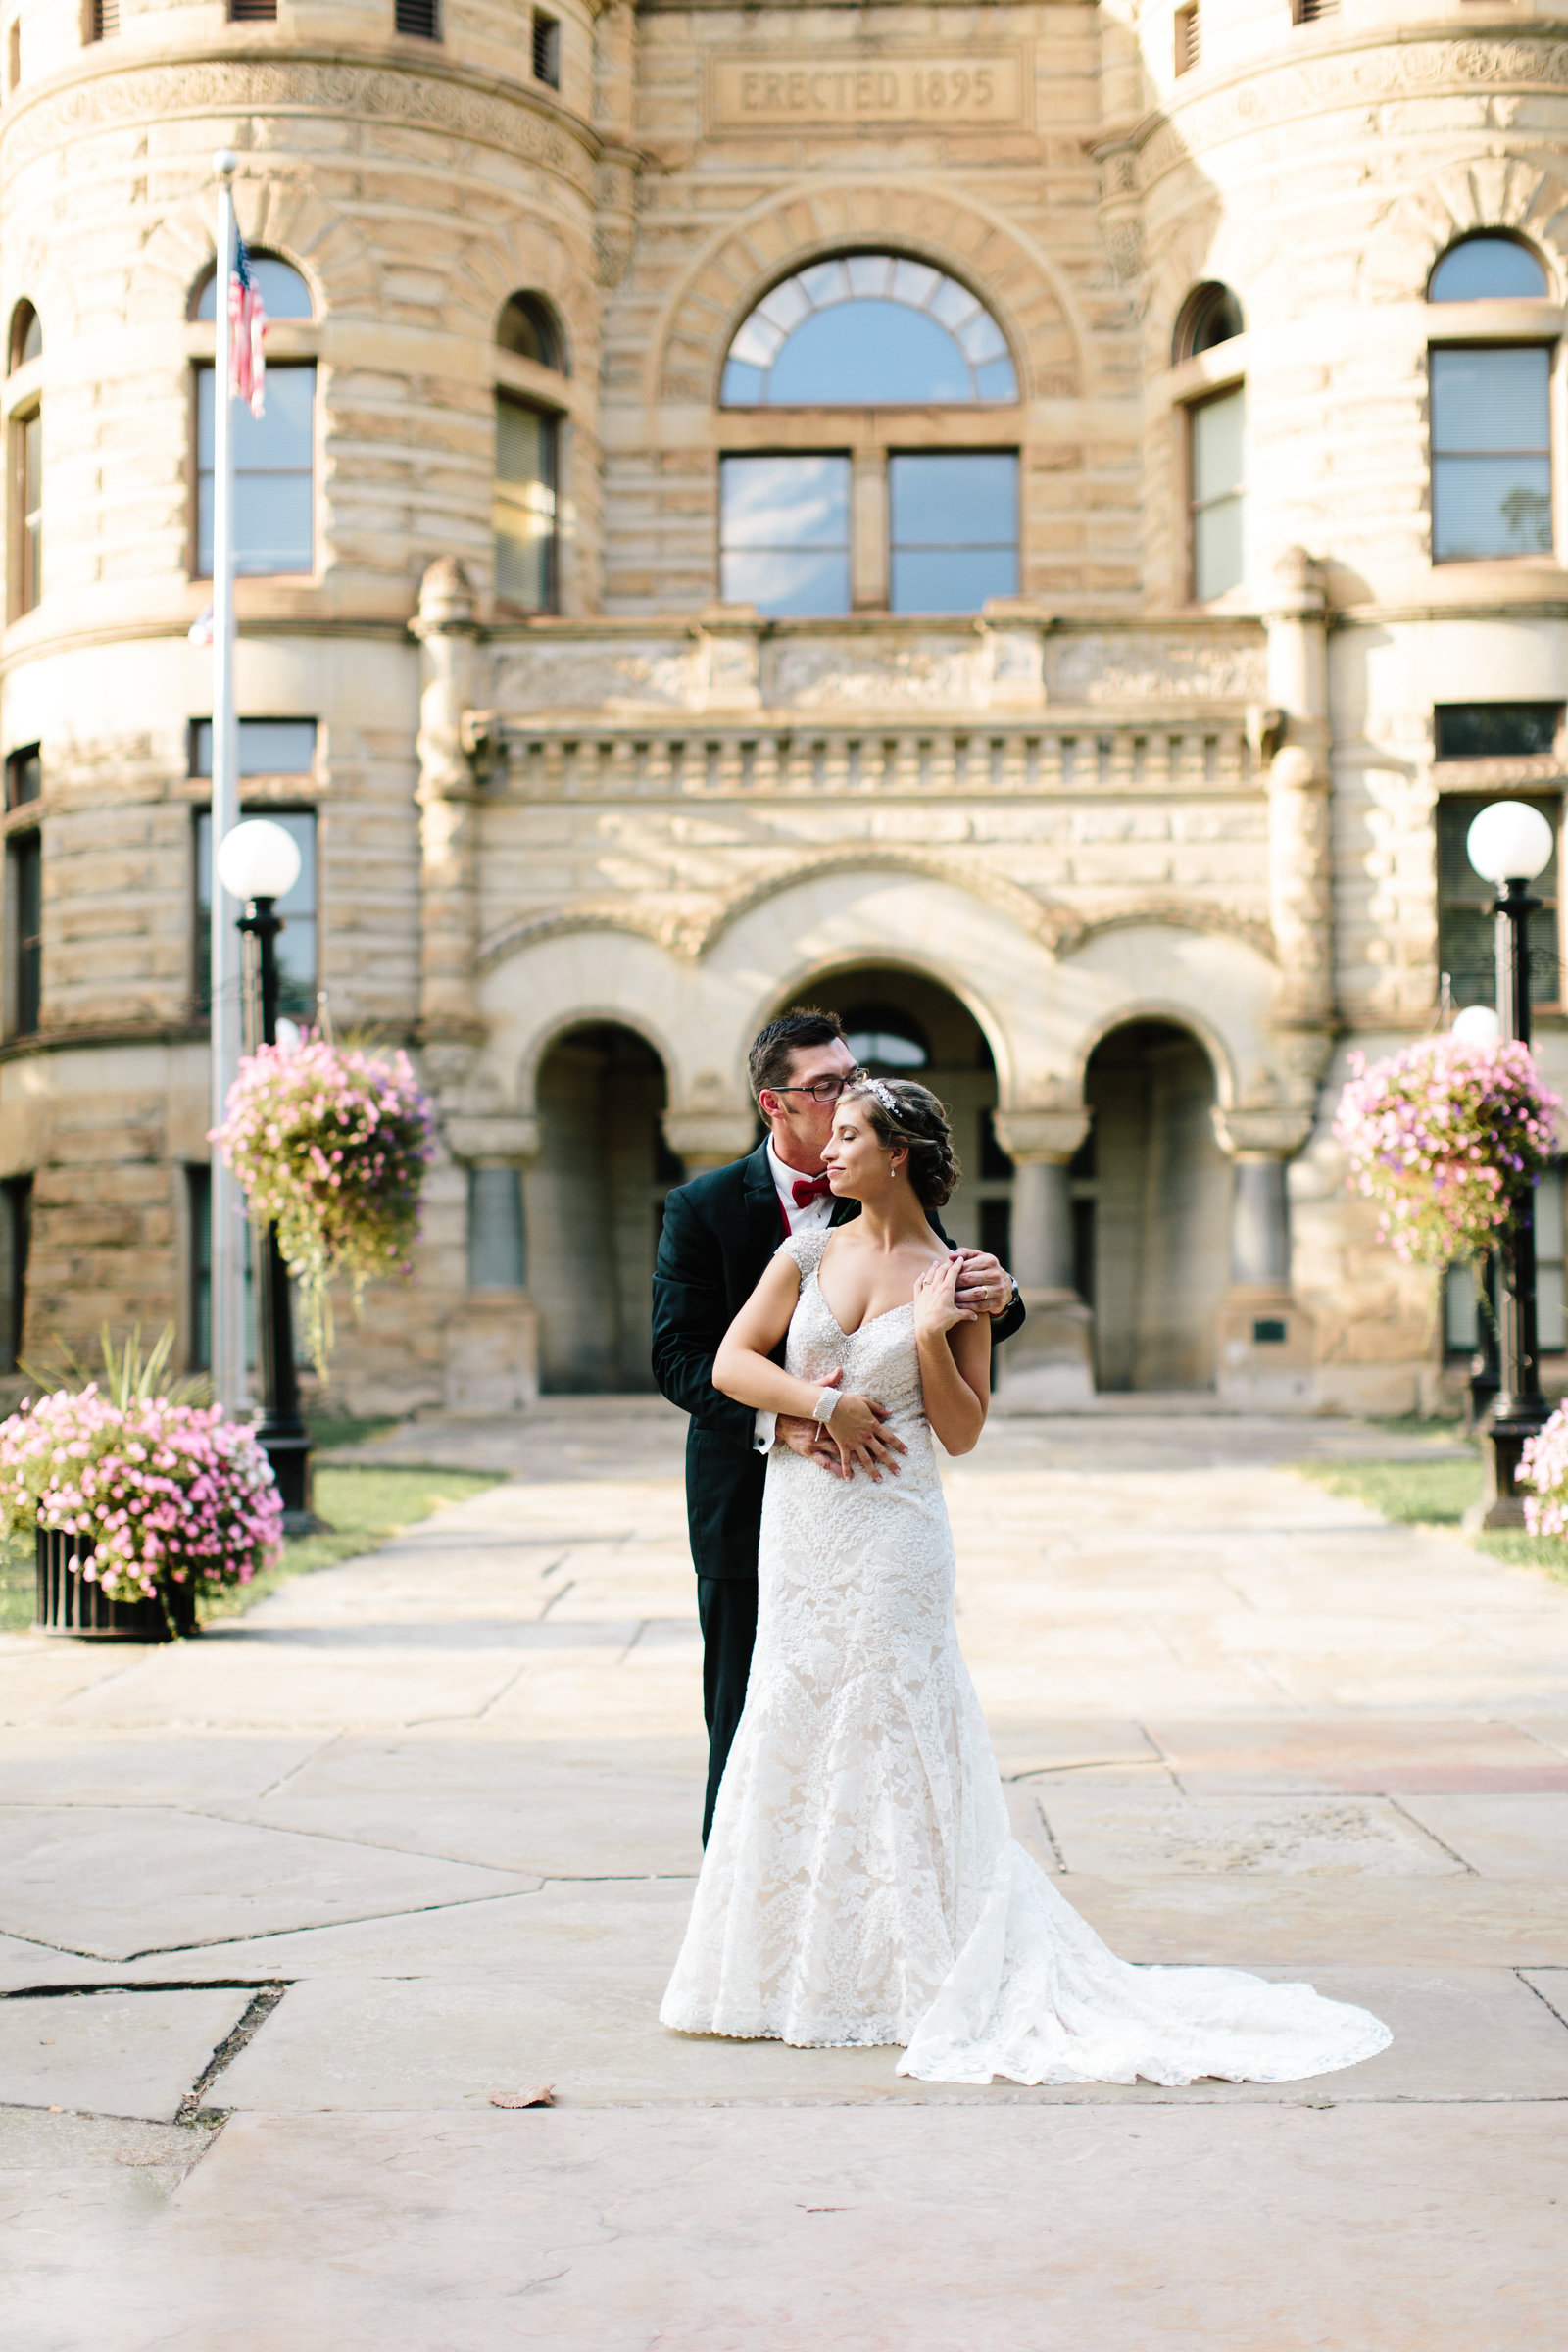 Upscale wedding in NE Ohio by Austin and Rachel Photography